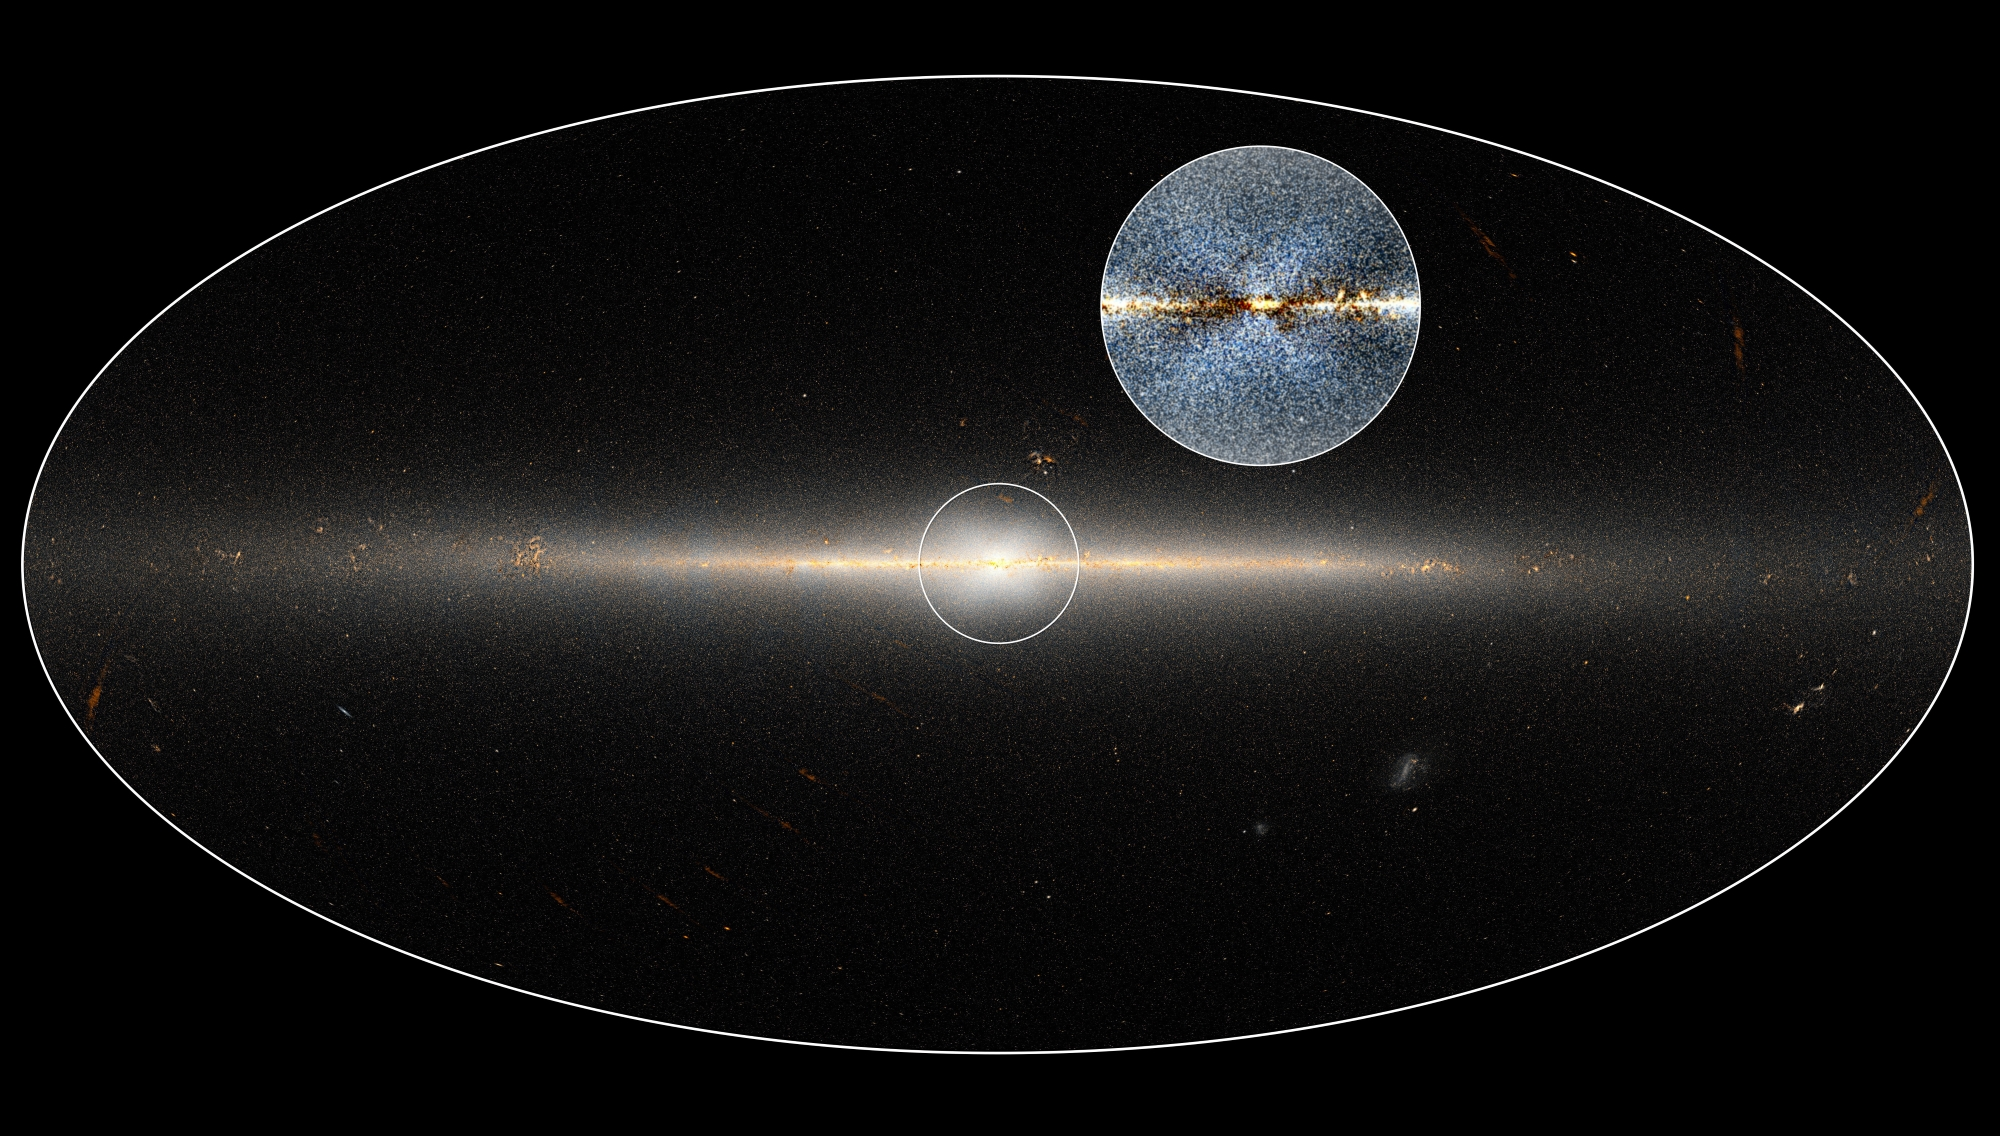 On 7/19/16 Astronomers using data from NASA's Wide-field Infrared Survey Explorer (WISE) mission announced that they have discovered an X-shaped structure in the bulge of the Milky Way, which is located in the center of our galaxy. (NASA/JPL-Caltech/D.Lang)